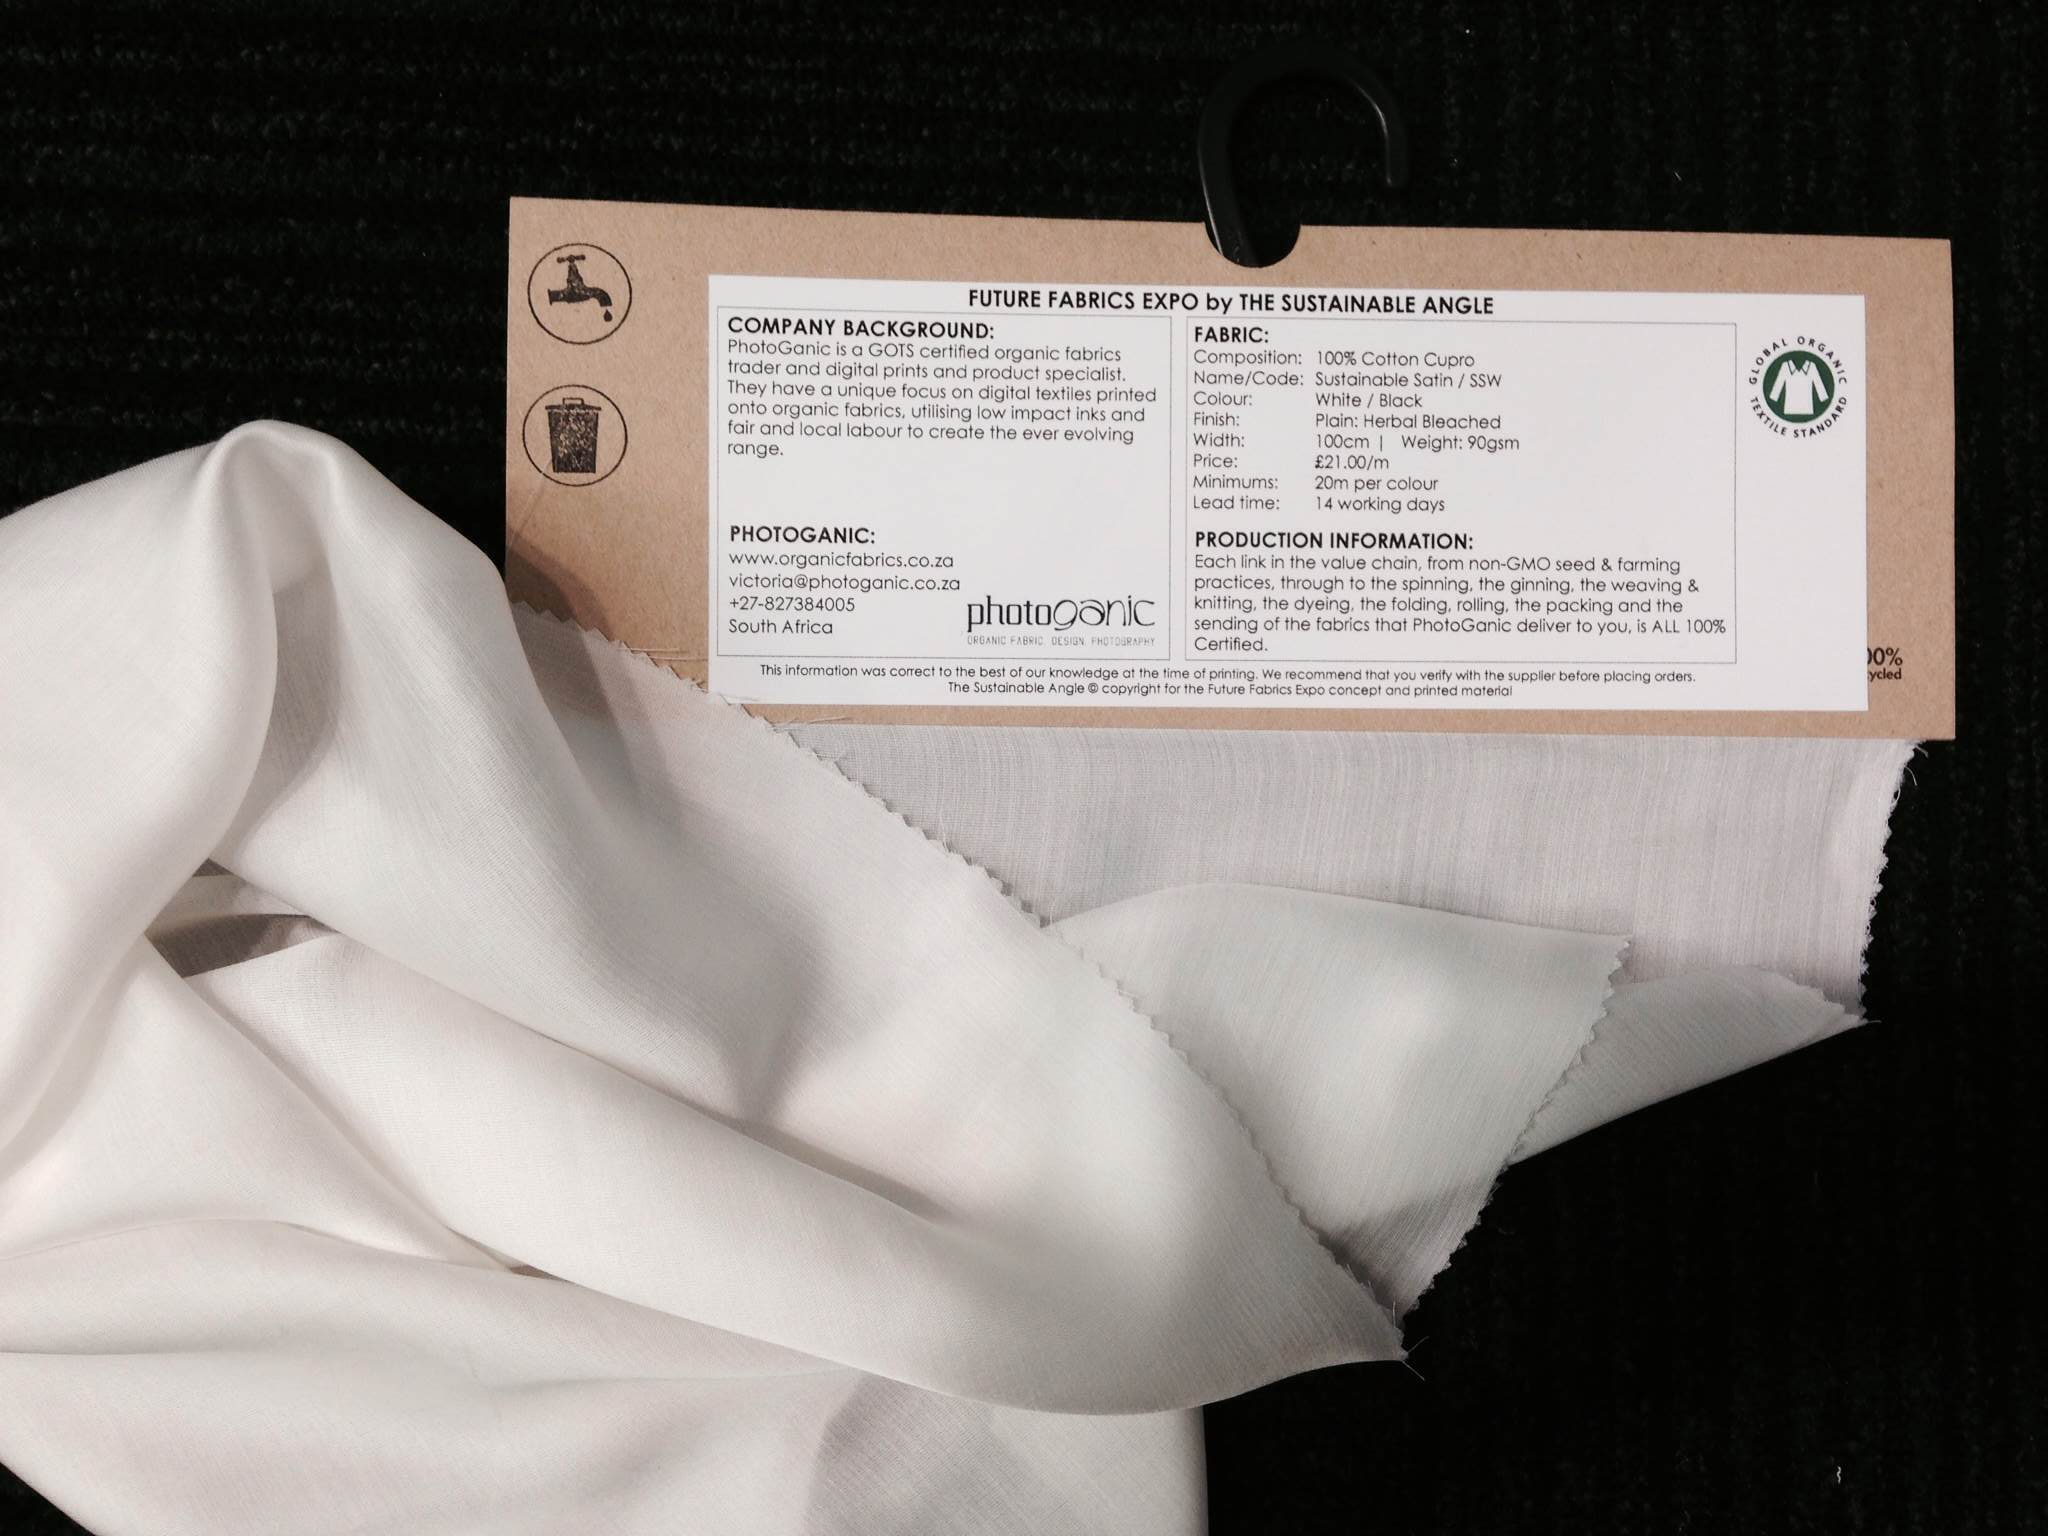 Photoganic cotton cupro